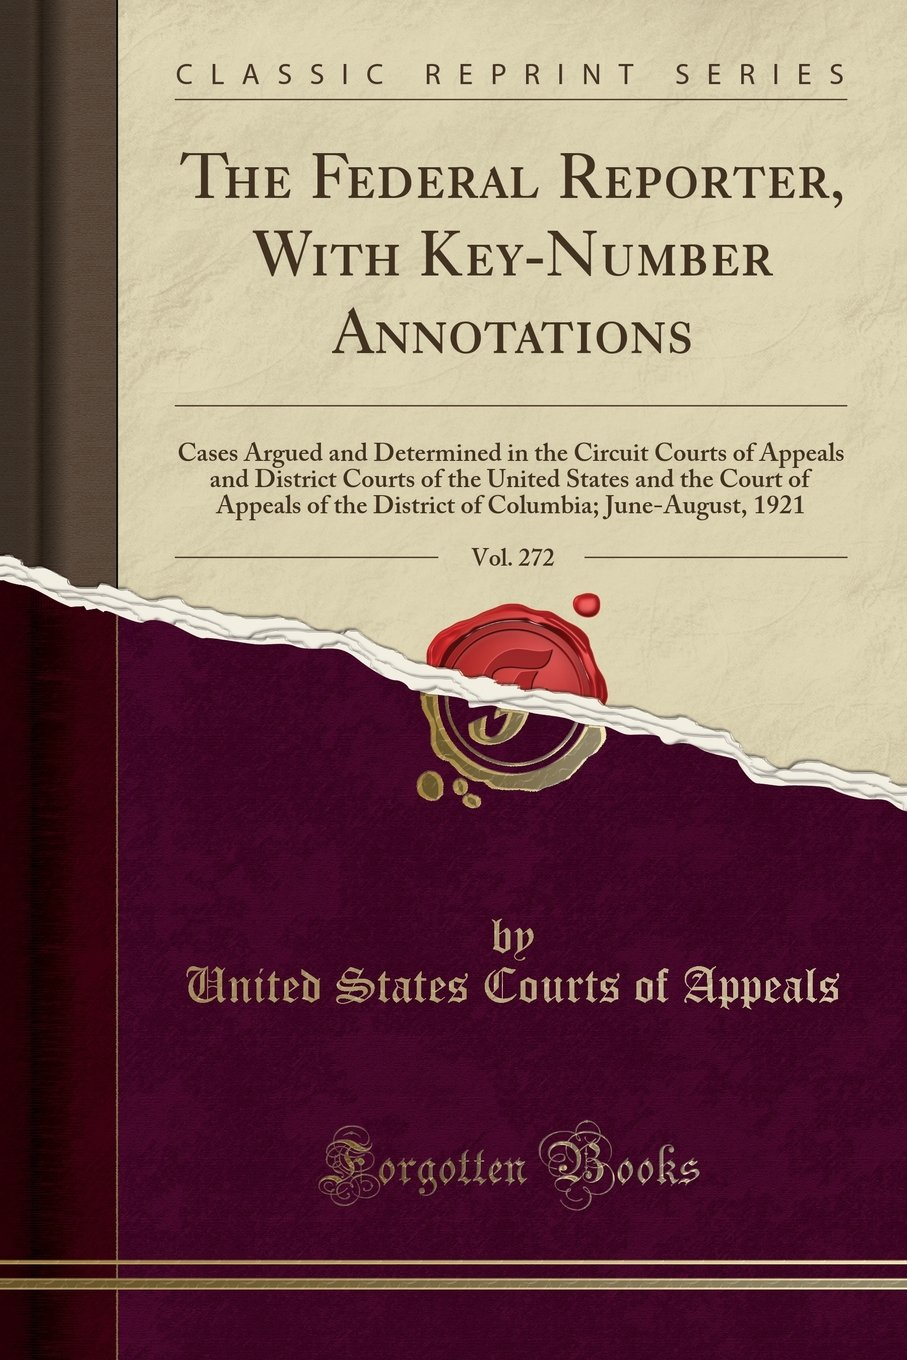 The Federal Reporter, With Key-Number Annotations, Vol. 272: Cases Argued and Determined in the Circuit Courts of Appeals and District Courts of the ... Columbia; June-August, 1921 (Classic Reprint) pdf